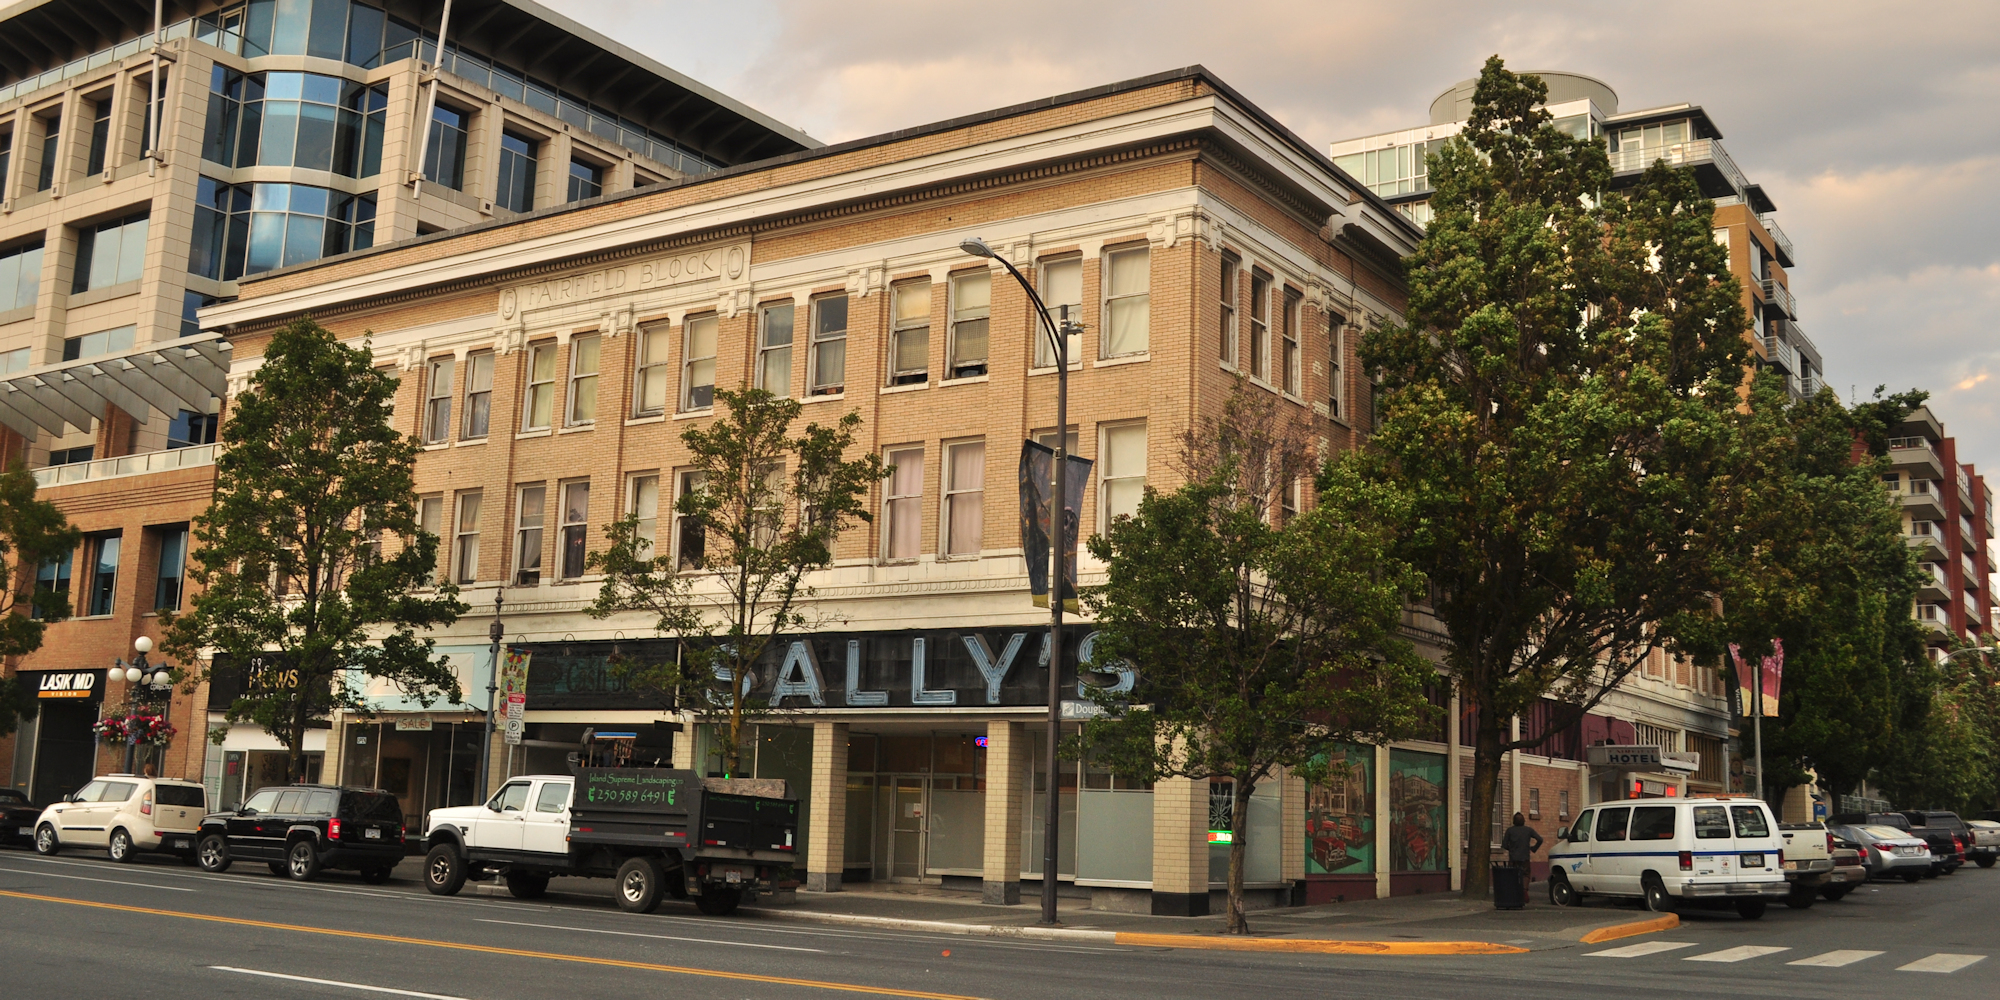 With Fairfield Hotel Closing, City and Operators To Meet Over Fate of $250,000 Paid to Keep It Open